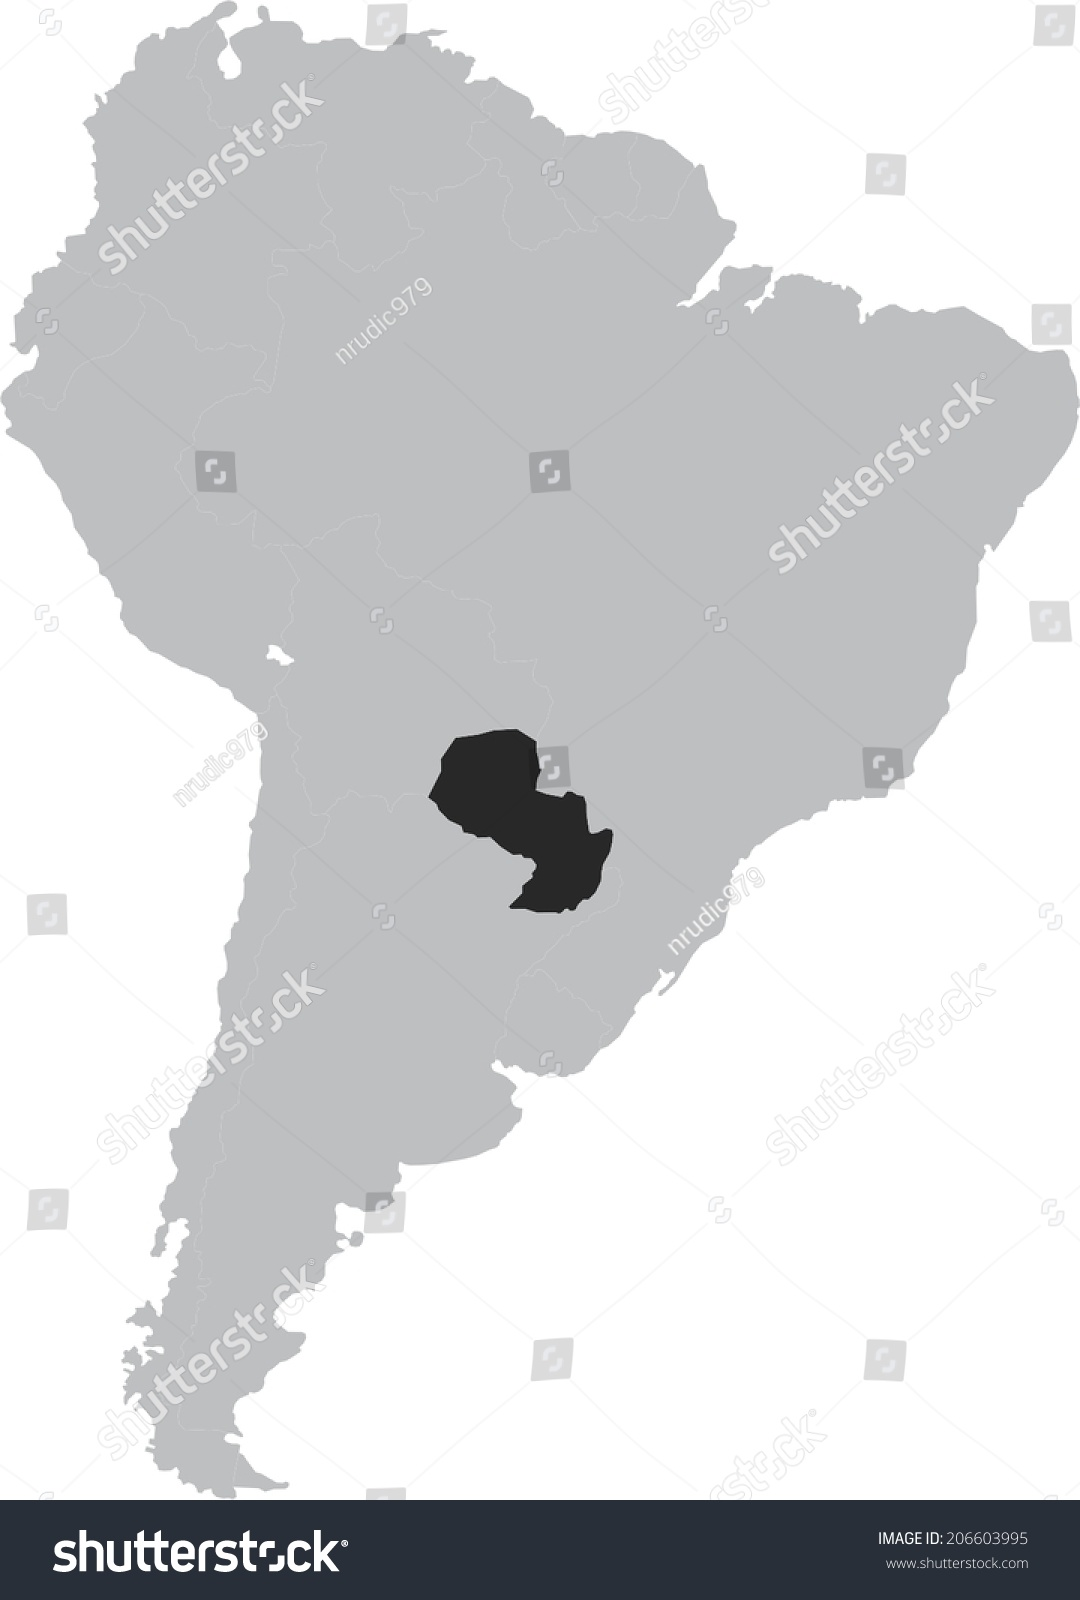 Paraguay Vector Map On South America Stock Vector 206603995